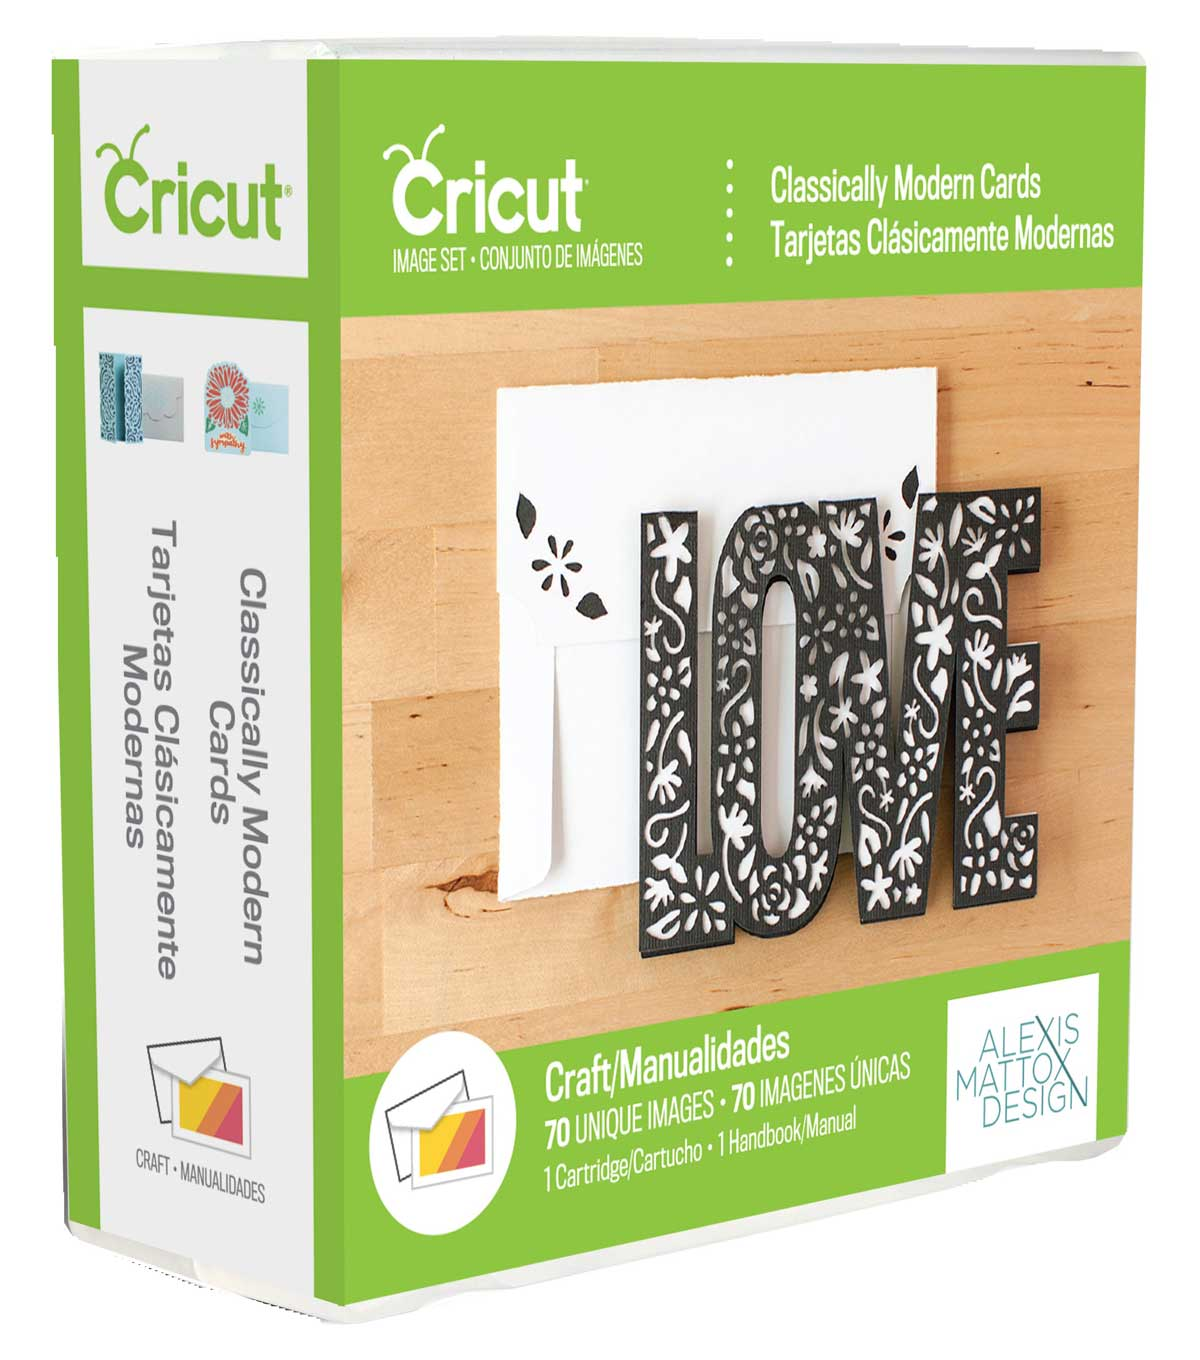 Cricut® Cartridge Classically Modern Cards